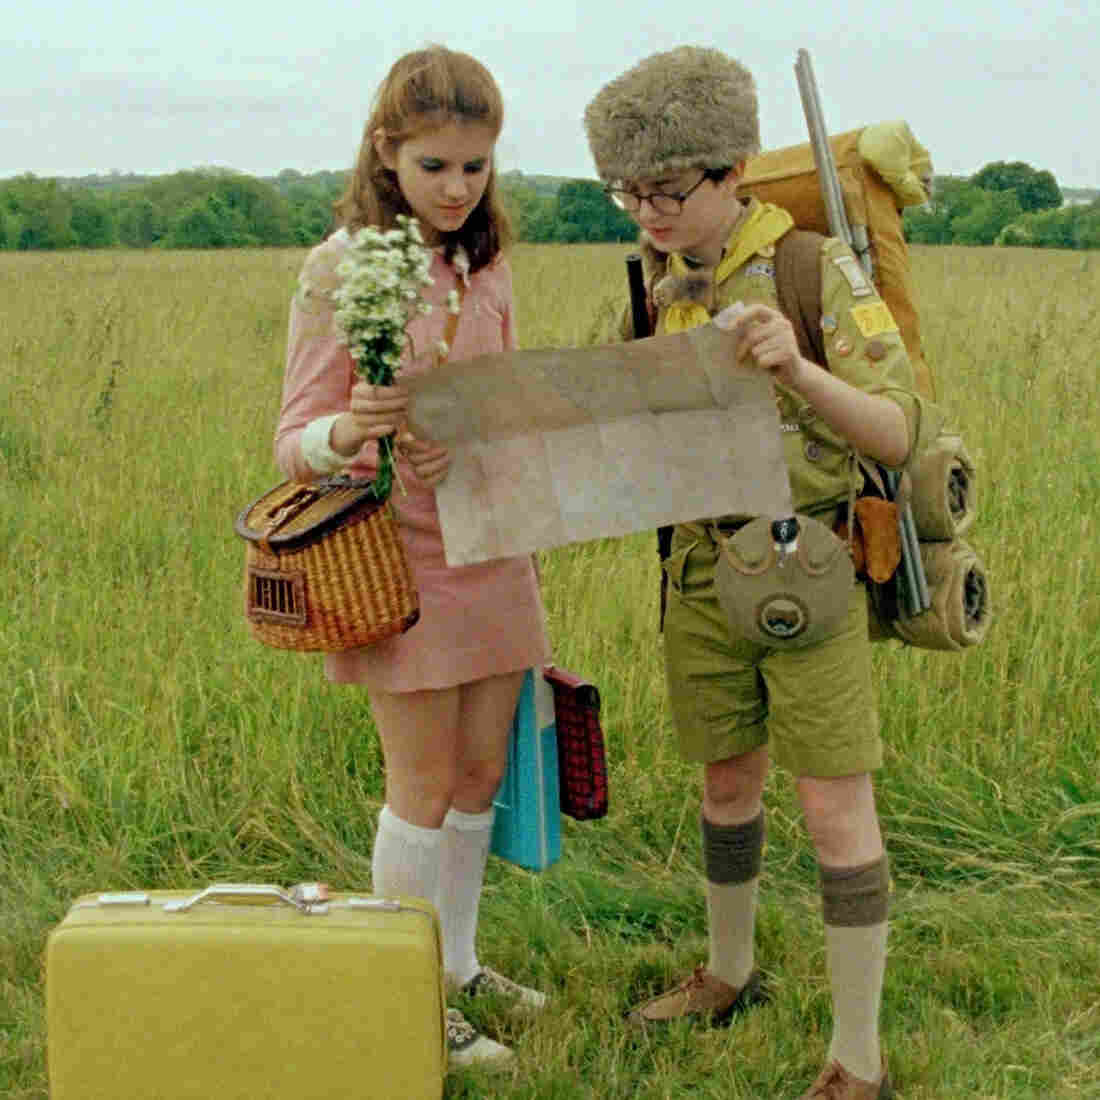 Kara Hayward and Jared Gilman star in Wes Anderson's latest film, Moonrise Kingdom.